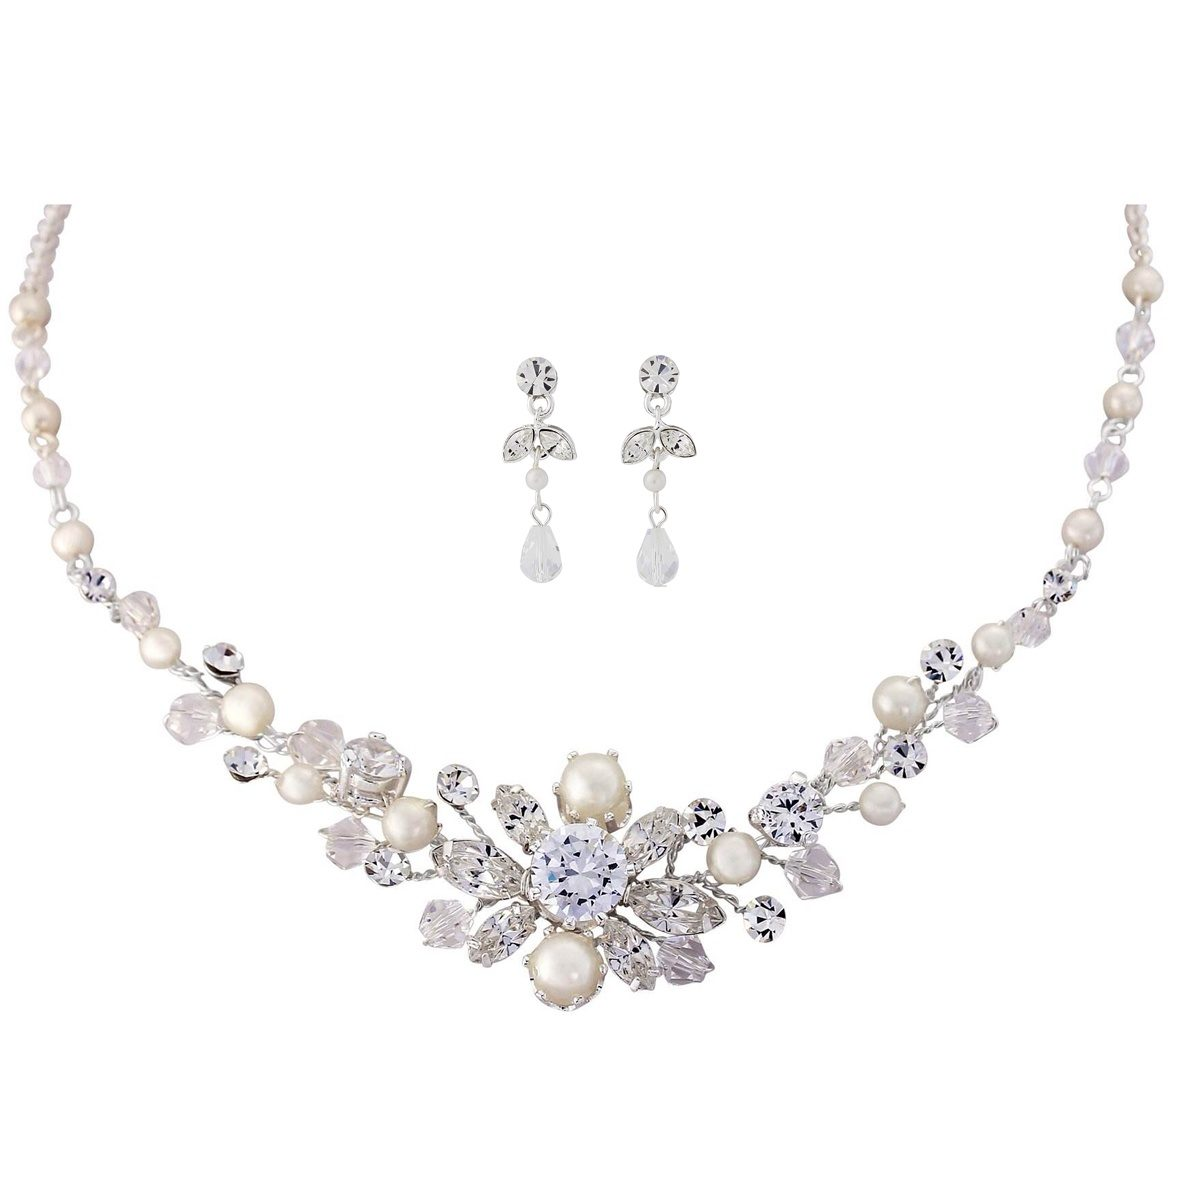 Timeless Pearl Necklace Set